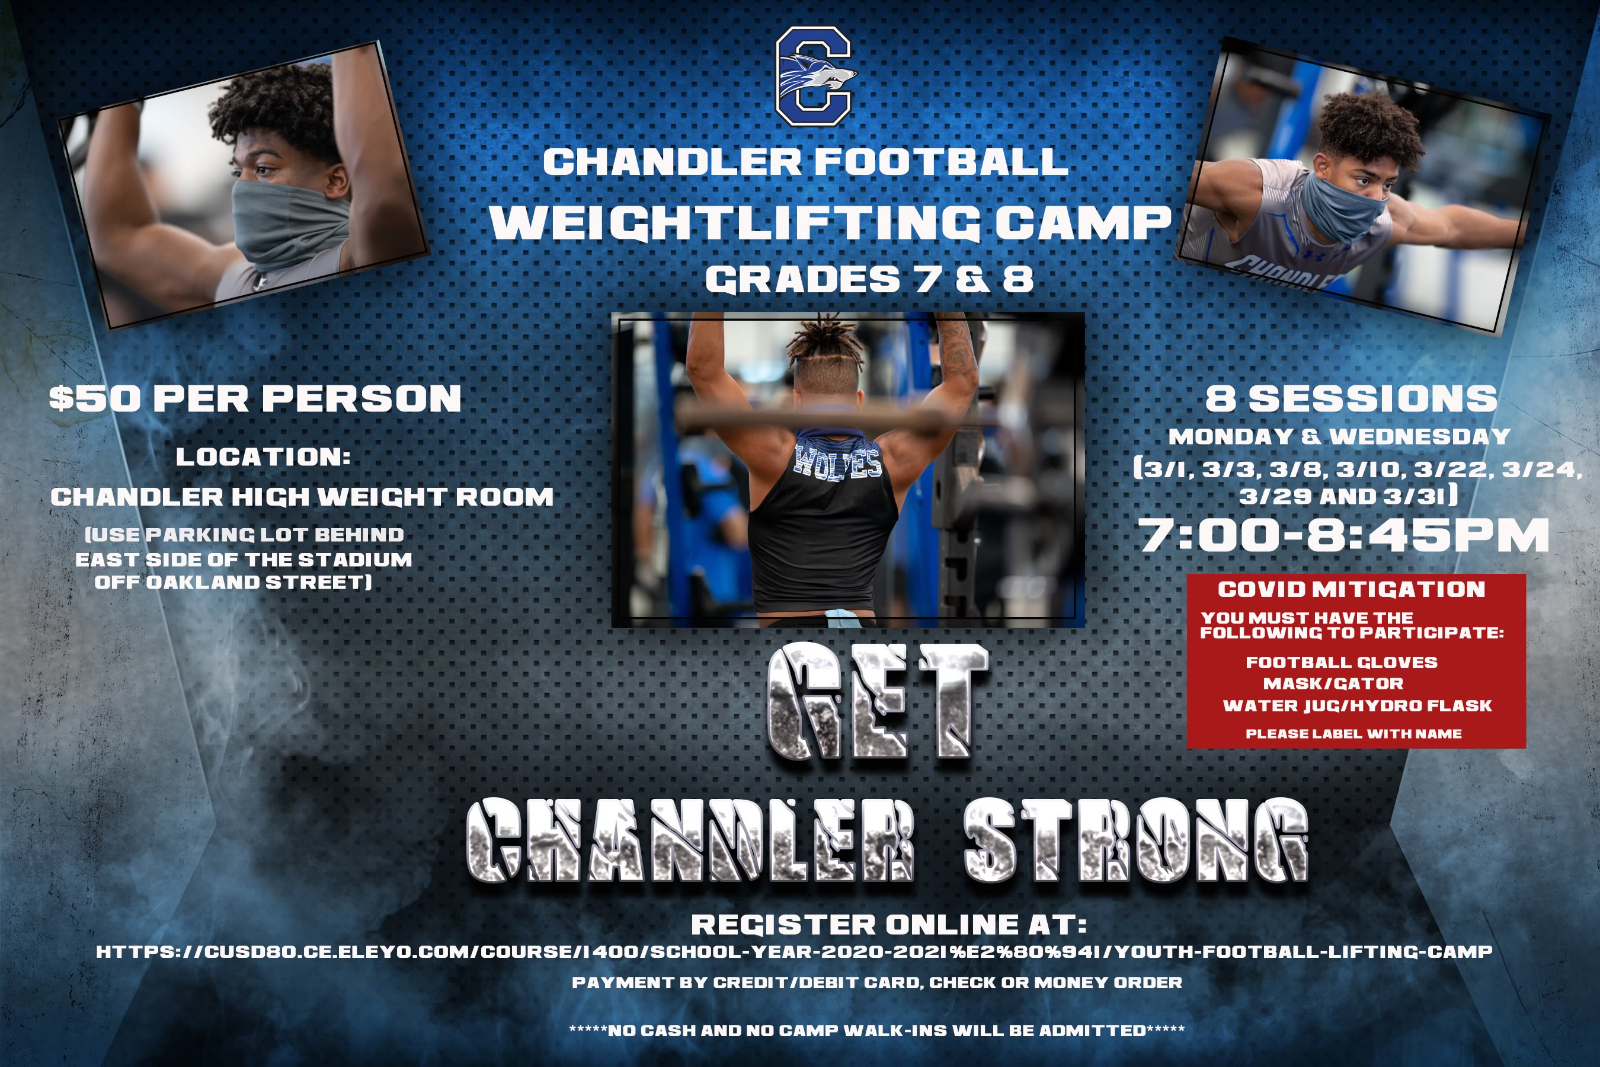 Chandler Football Weightlifting Camp